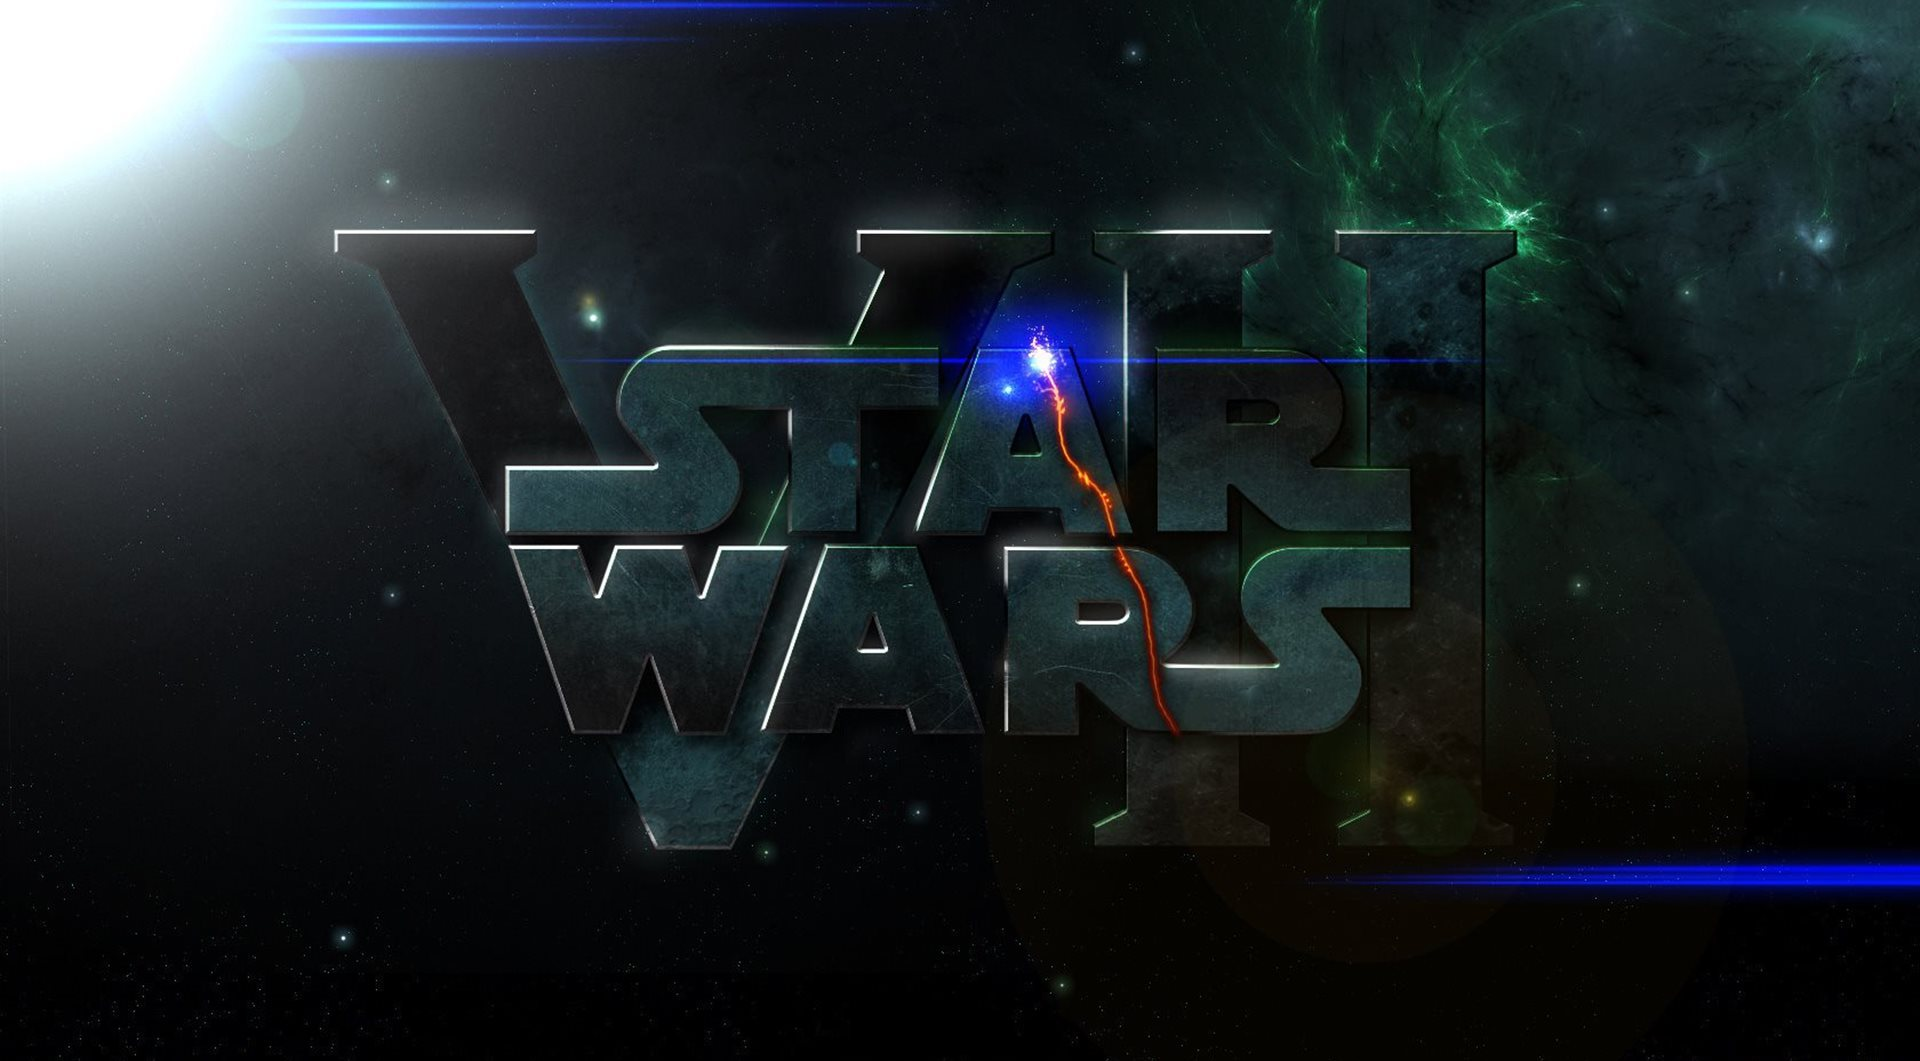 Free Download Download Star Wars The Force Awakens Wallpapers Free 1920x1061 For Your Desktop Mobile Tablet Explore 54 Star Wars Force Background Star Wars Force Background Star Wars Wallpaper